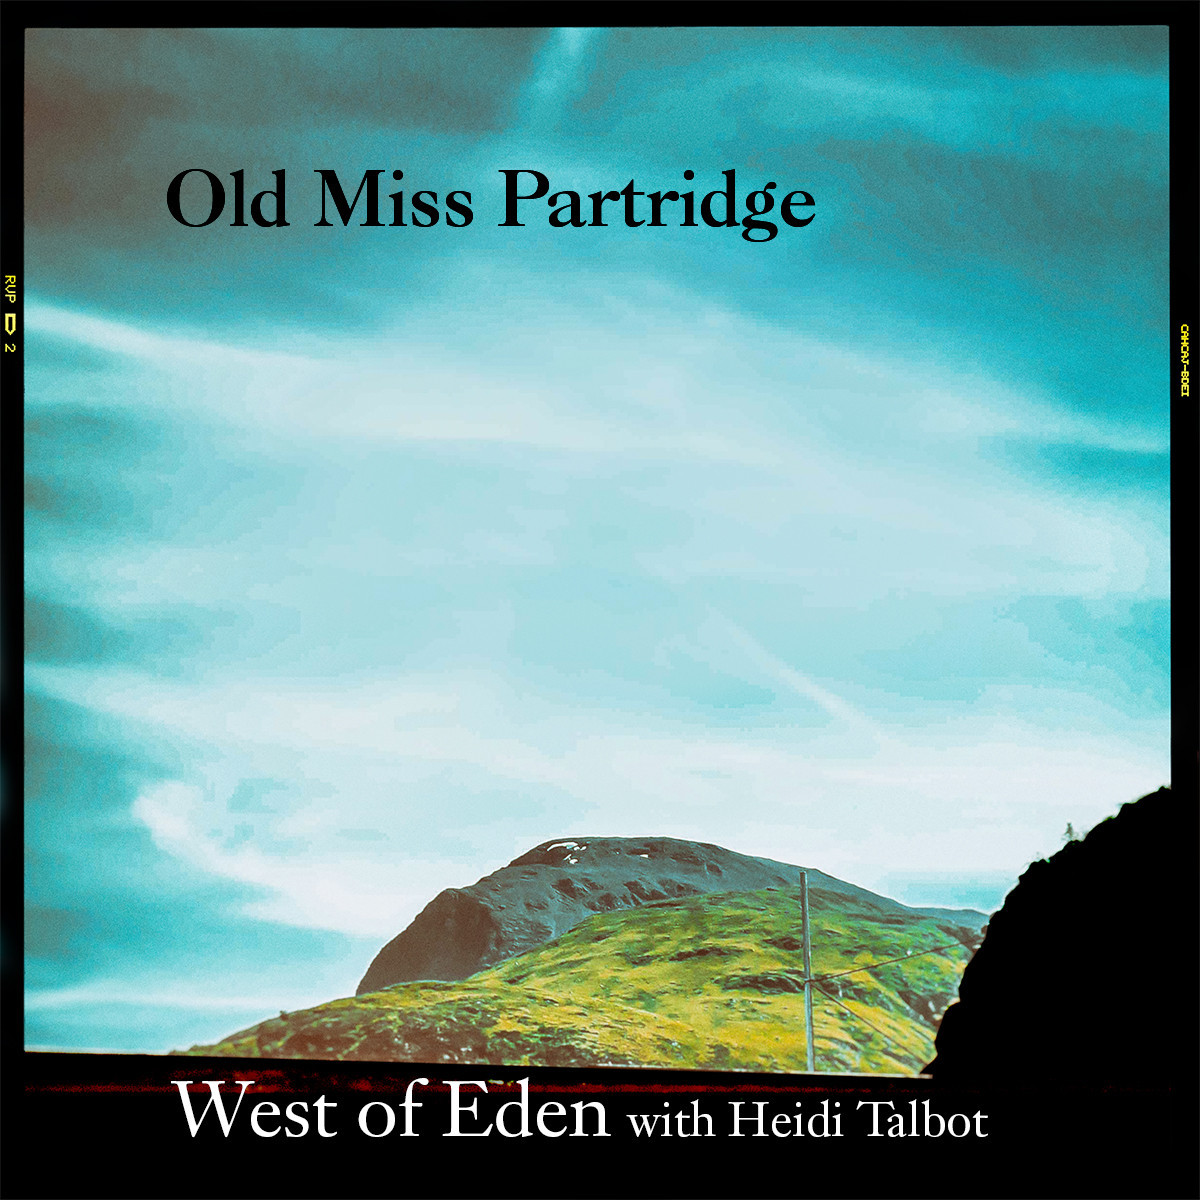 West of Eden samarbetar med Heidi Talbot på nya singeln Old Miss Partridge